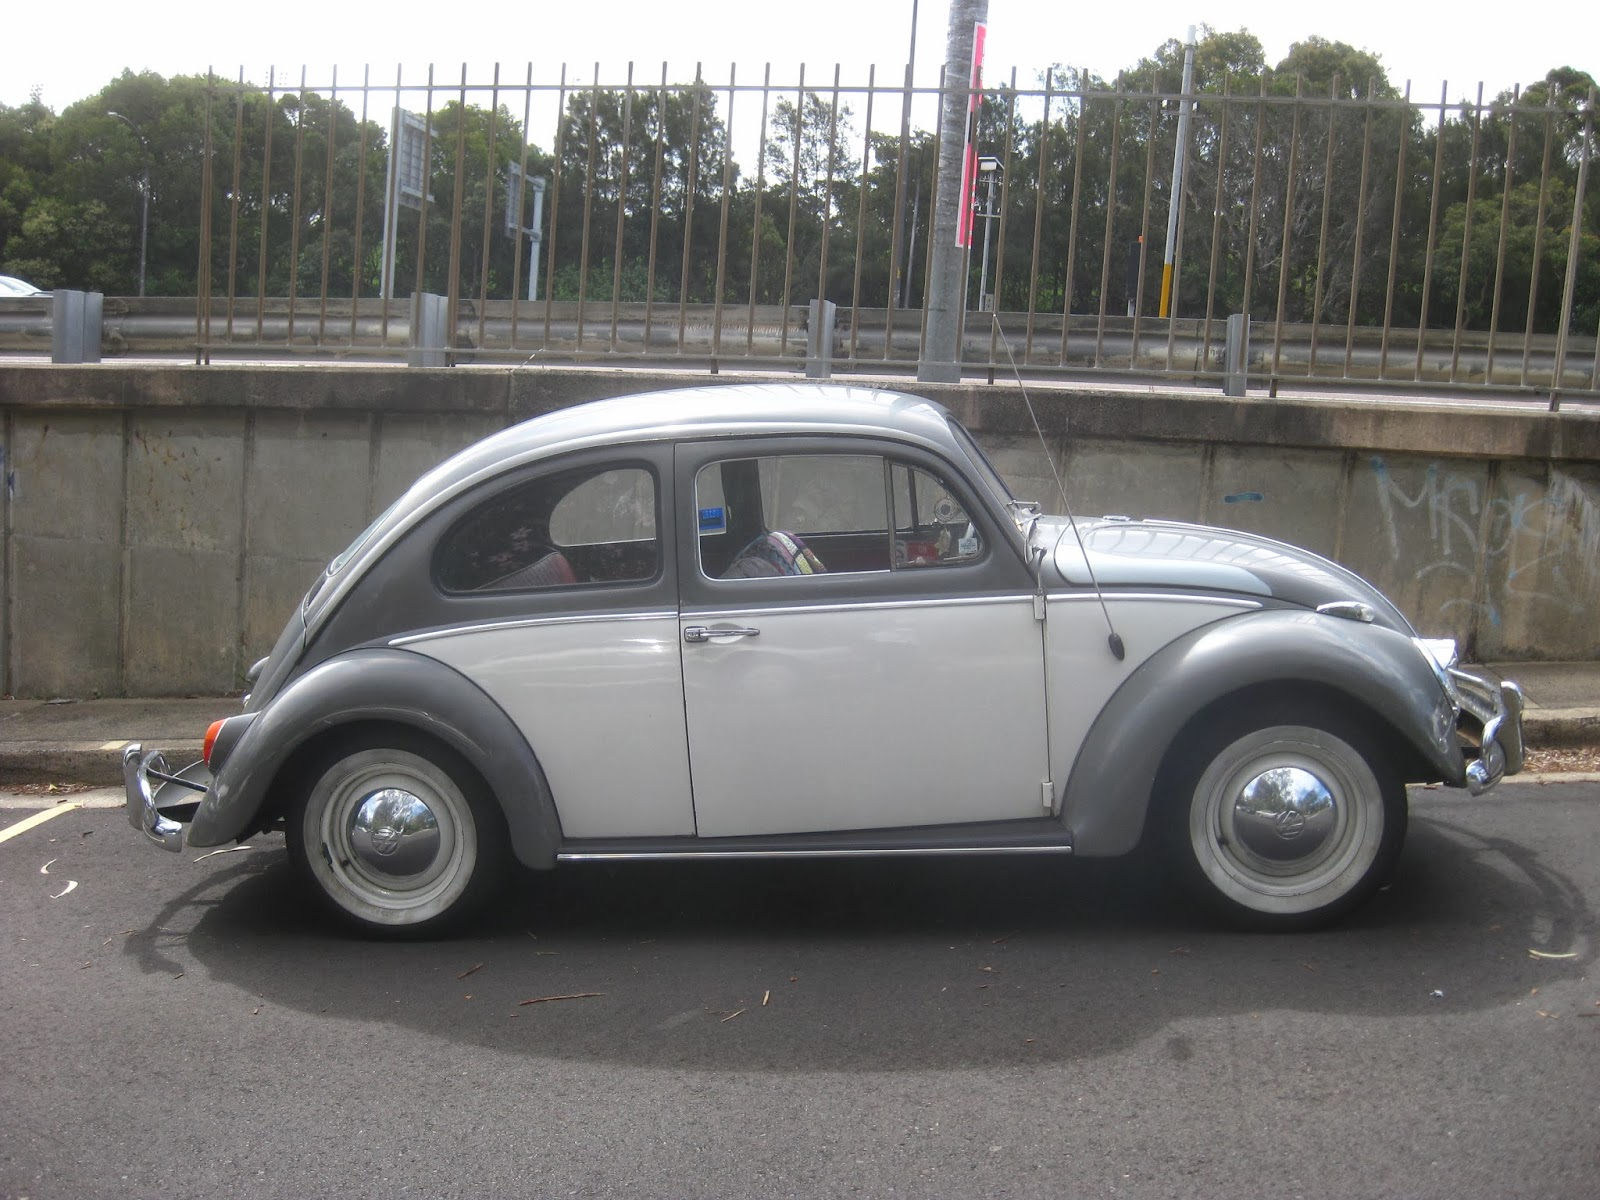 Aussie Old Parked Cars 1963 Volkswagen Beetle